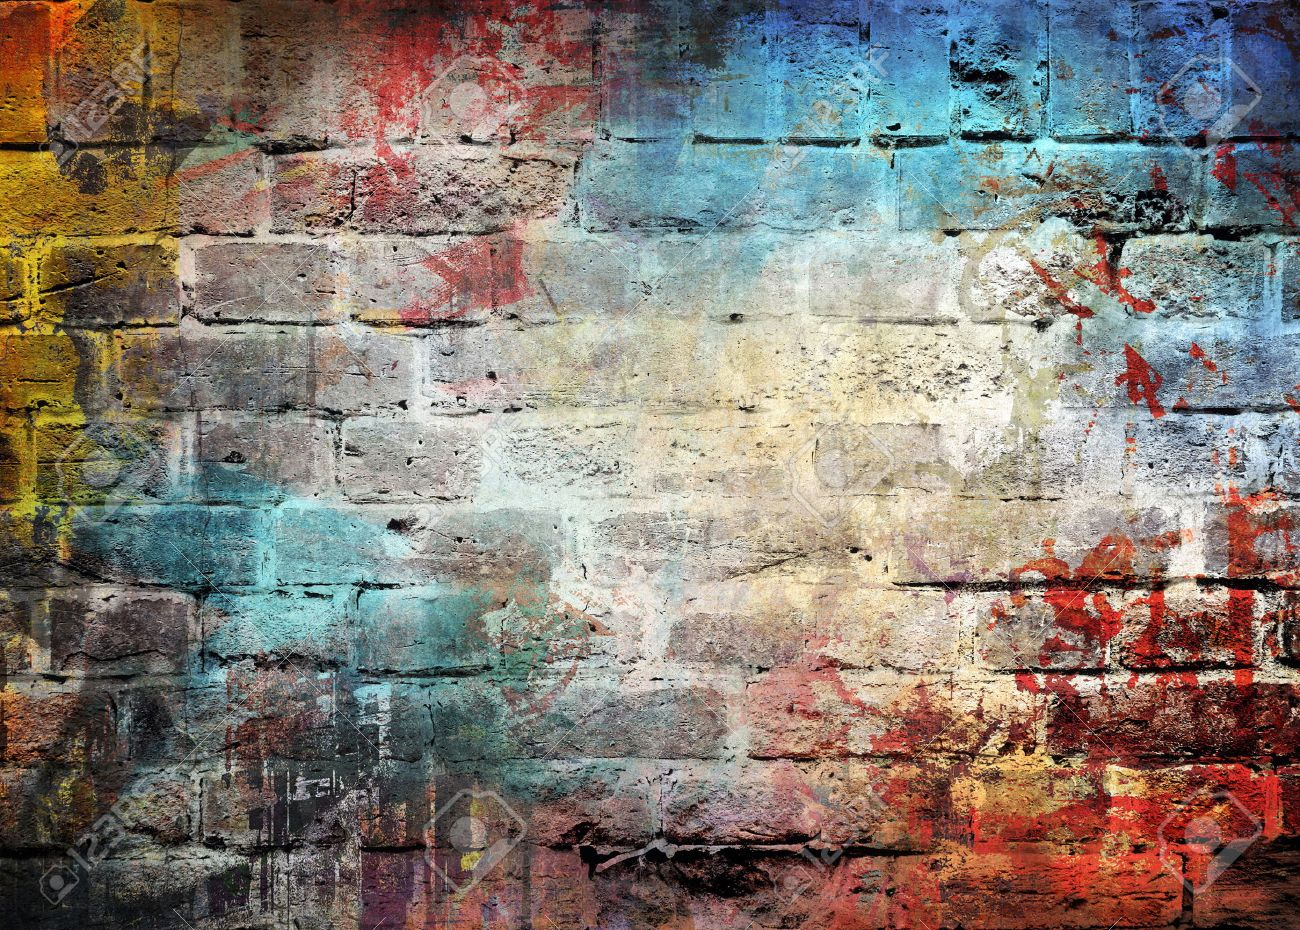 Graffiti wall pictures - Graffiti Wall Background Stock Photo 31127960